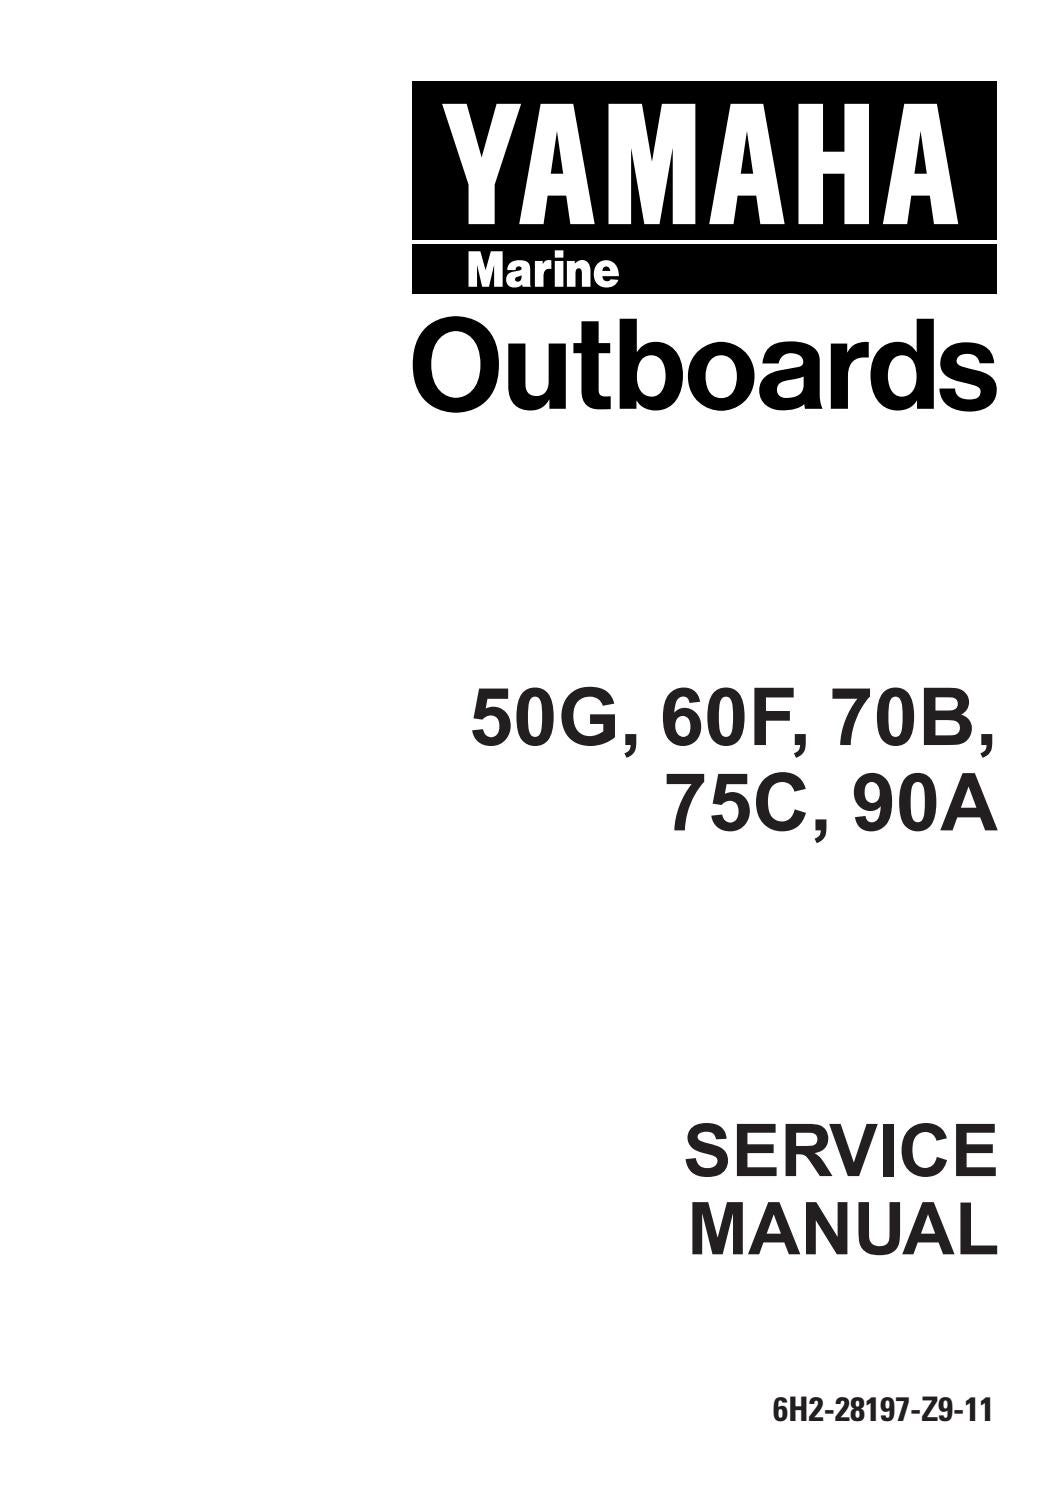 Yamaha 70beto, 70tr outboard service repair manual l 491824